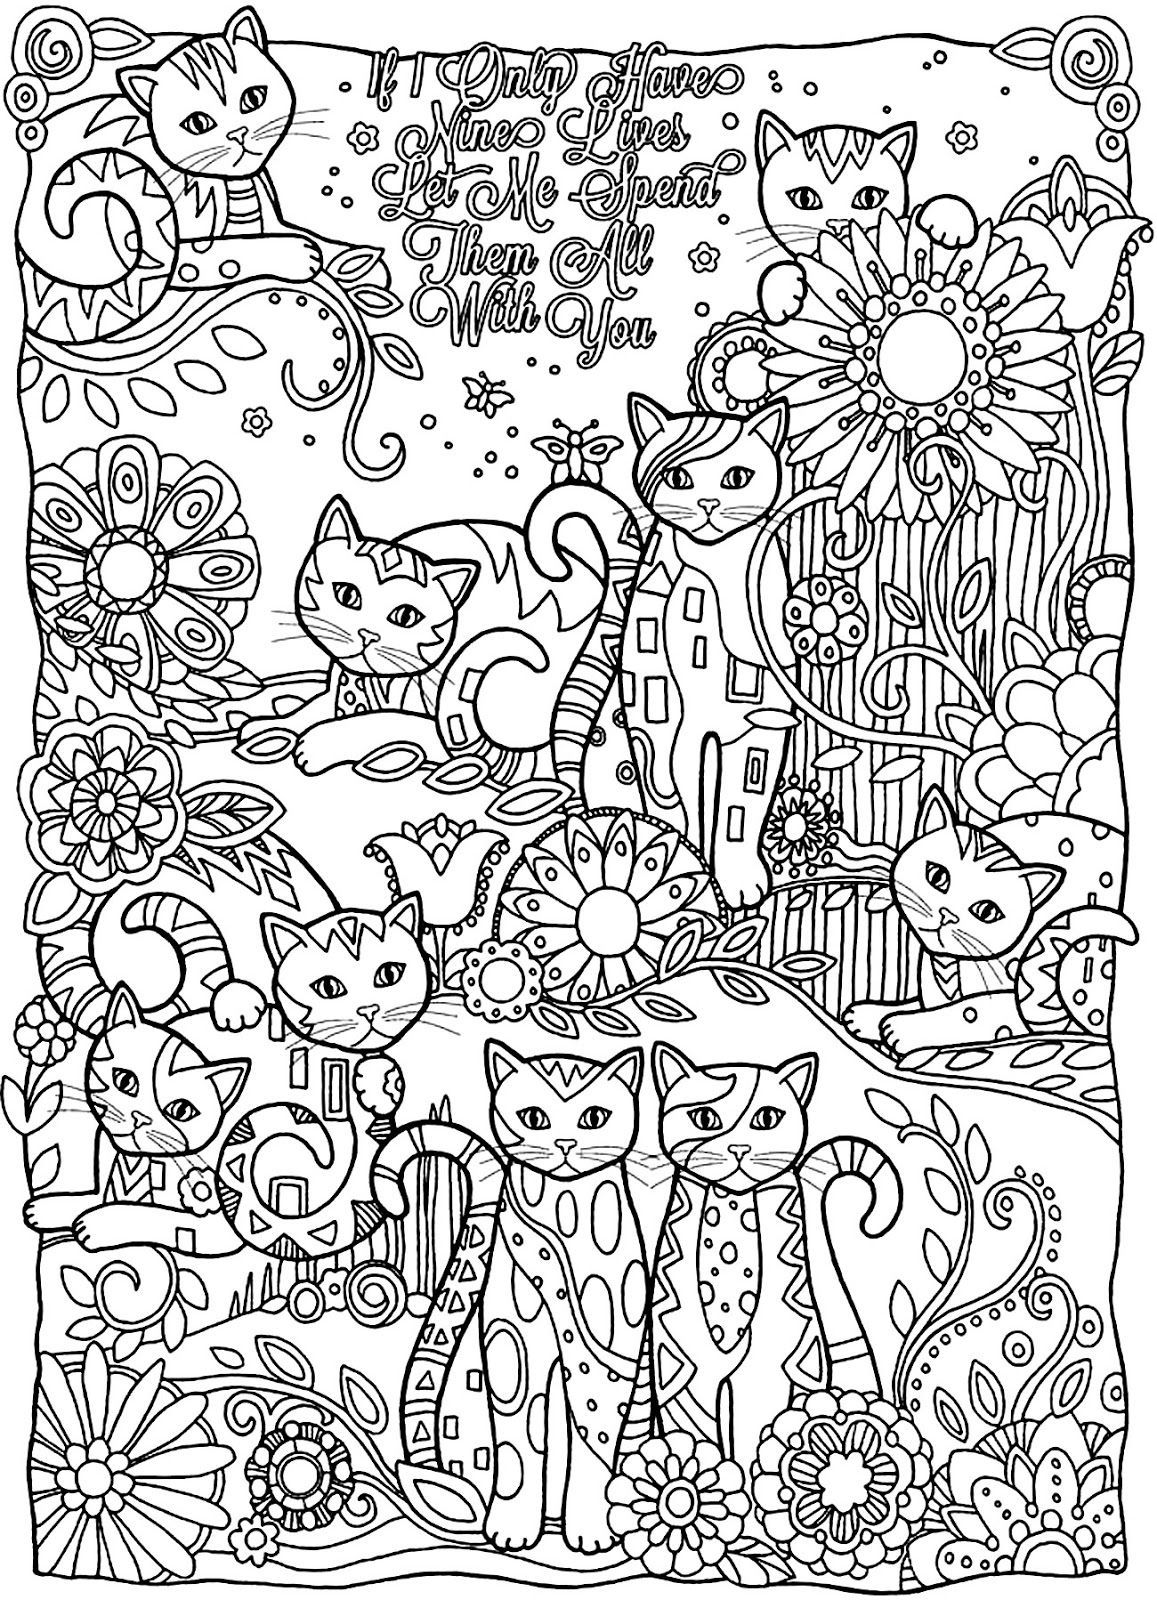 Free coloring pages august - Coloring Page World If I Only Have Nine Lives Let Me Spend Them All With